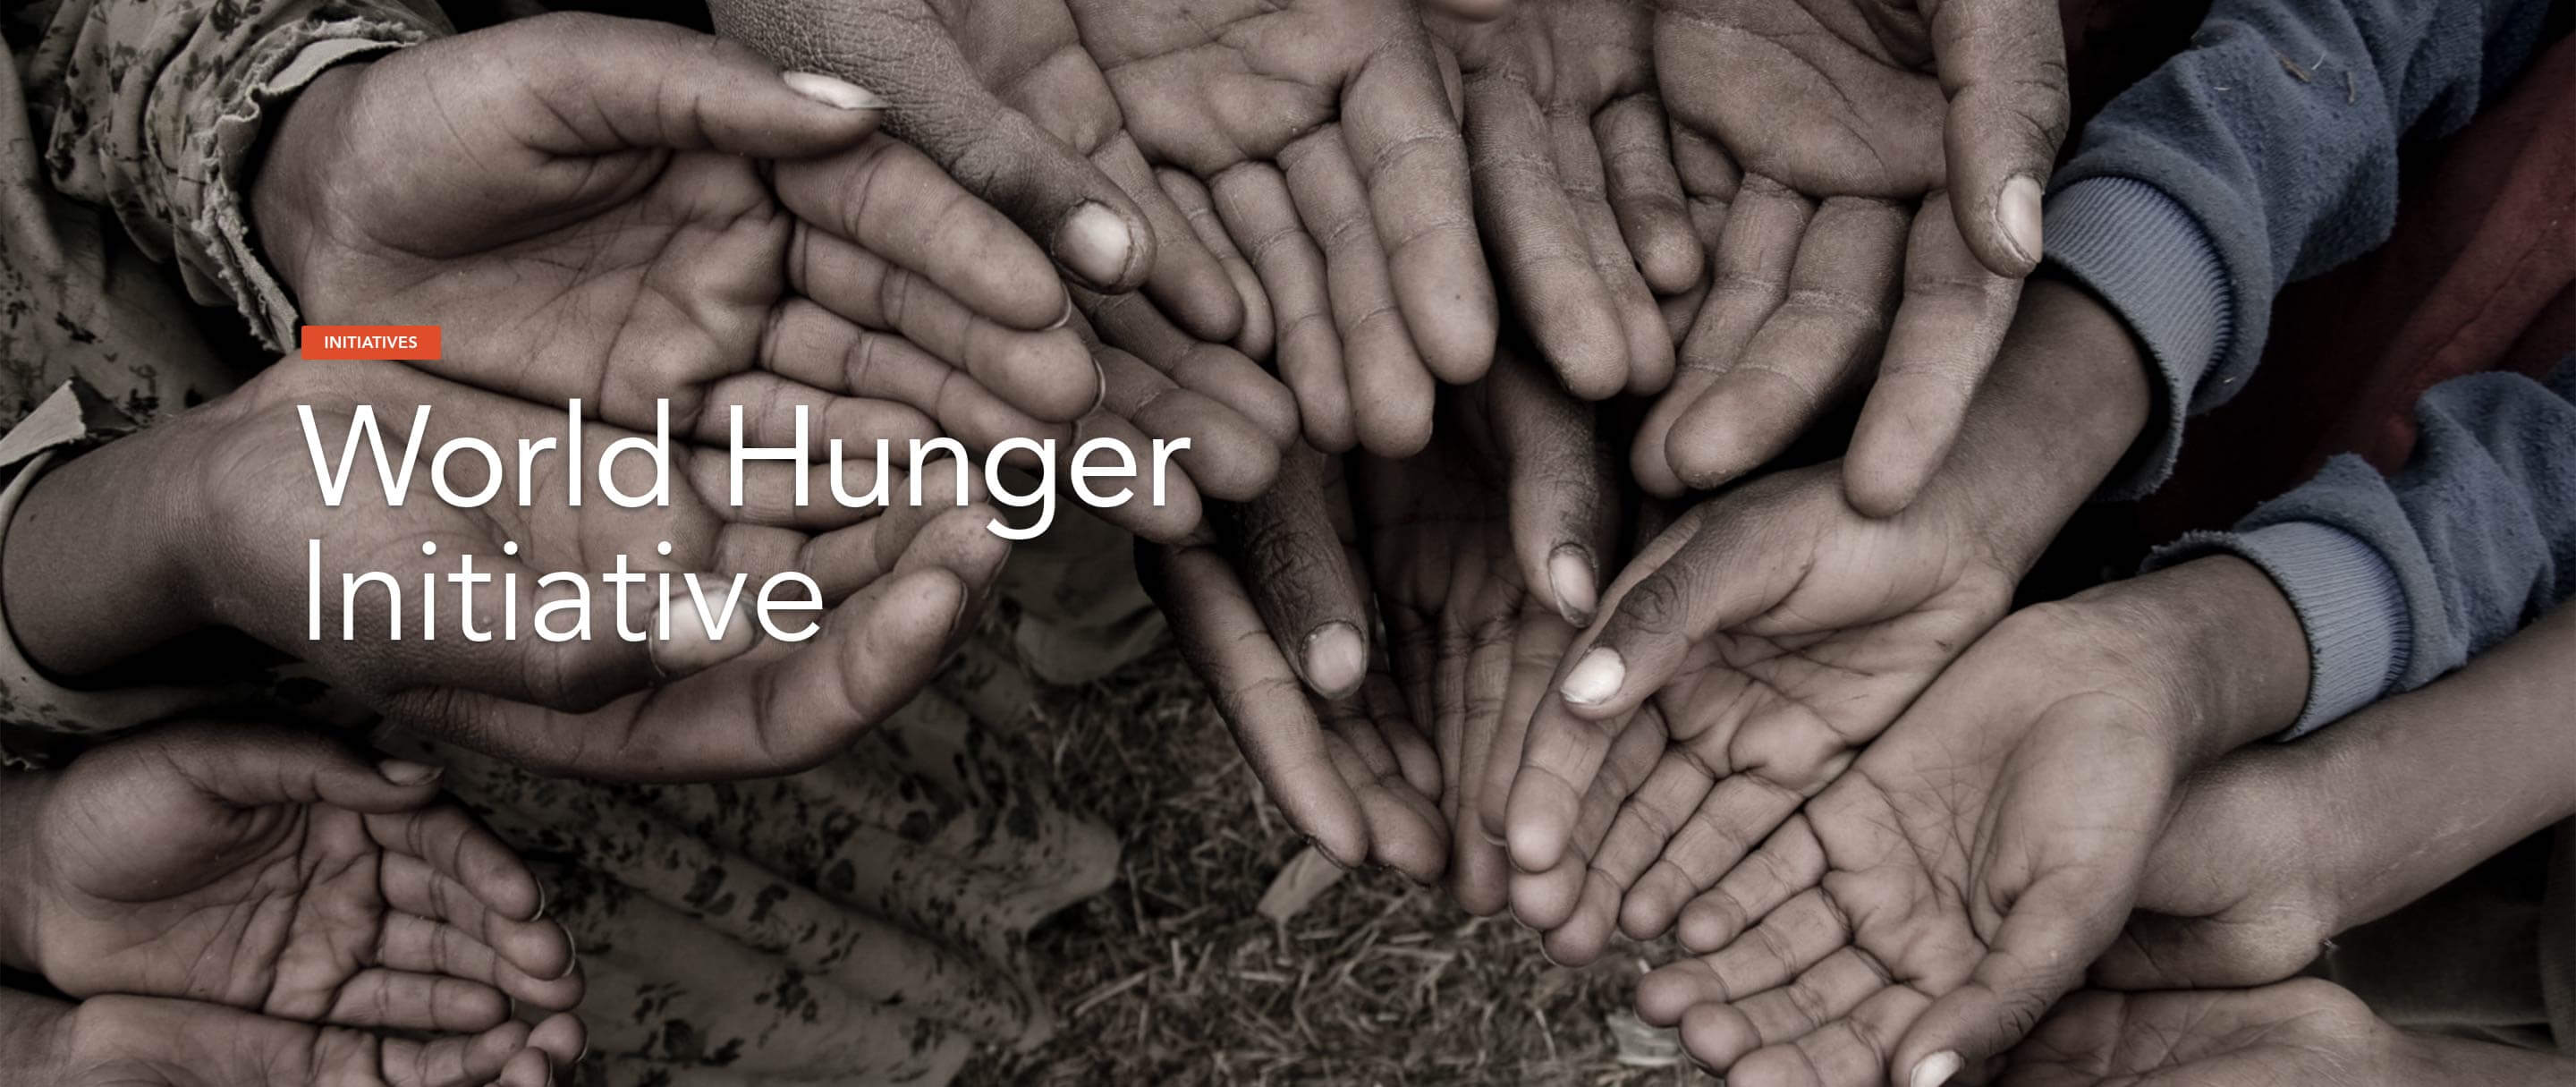 World Hunger Initiative